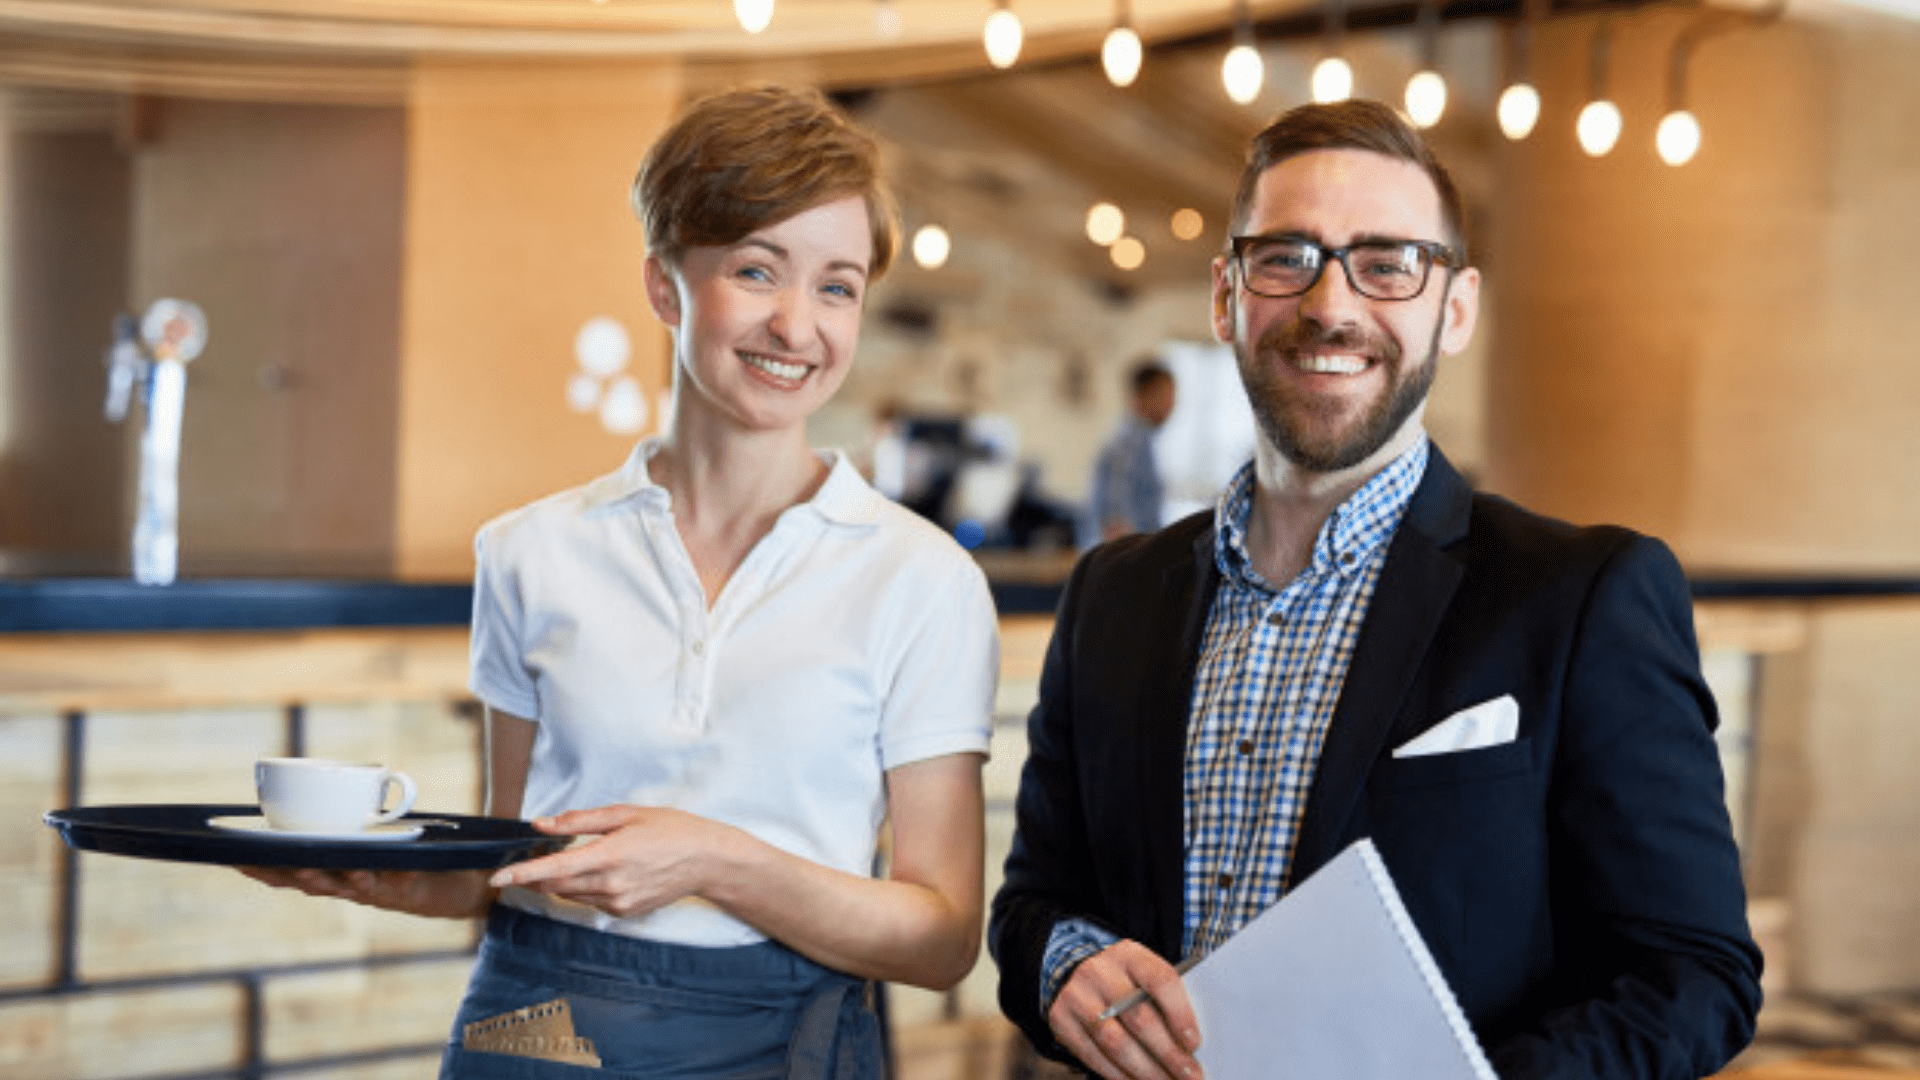 Hiring Restaurant Staff: How to Find and Hire the Best Staff For Your Restaurant?